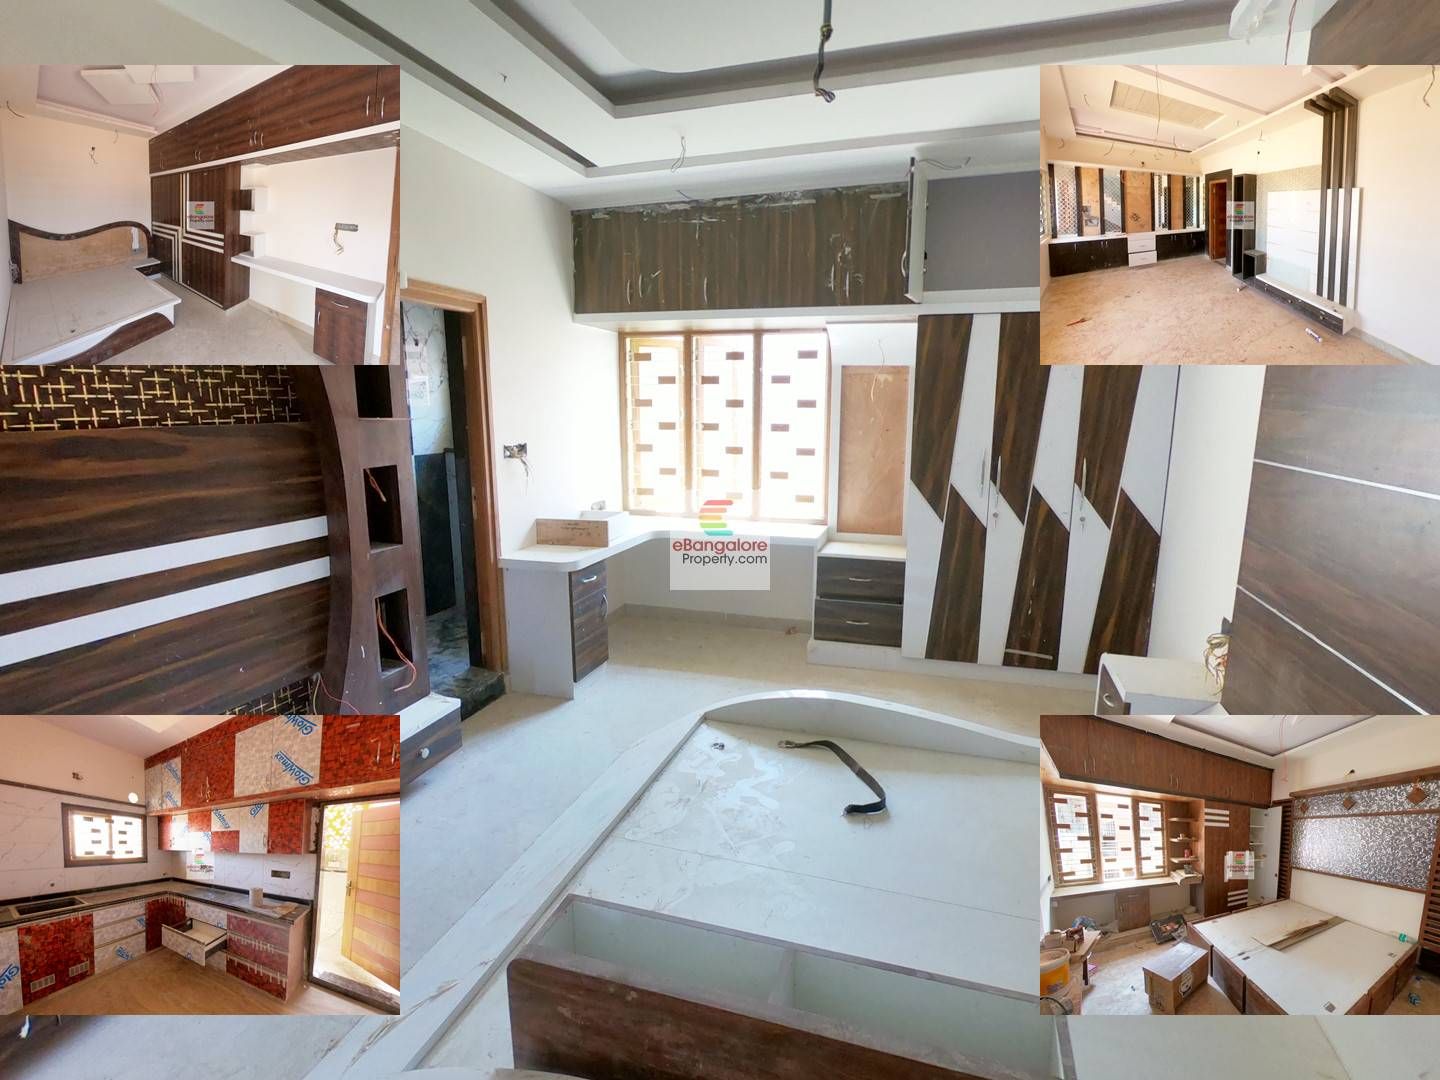 Vidyaranyapura Ext – 4BHK Duplex Independent House For Sale on 30×40 – Lavish Interiors